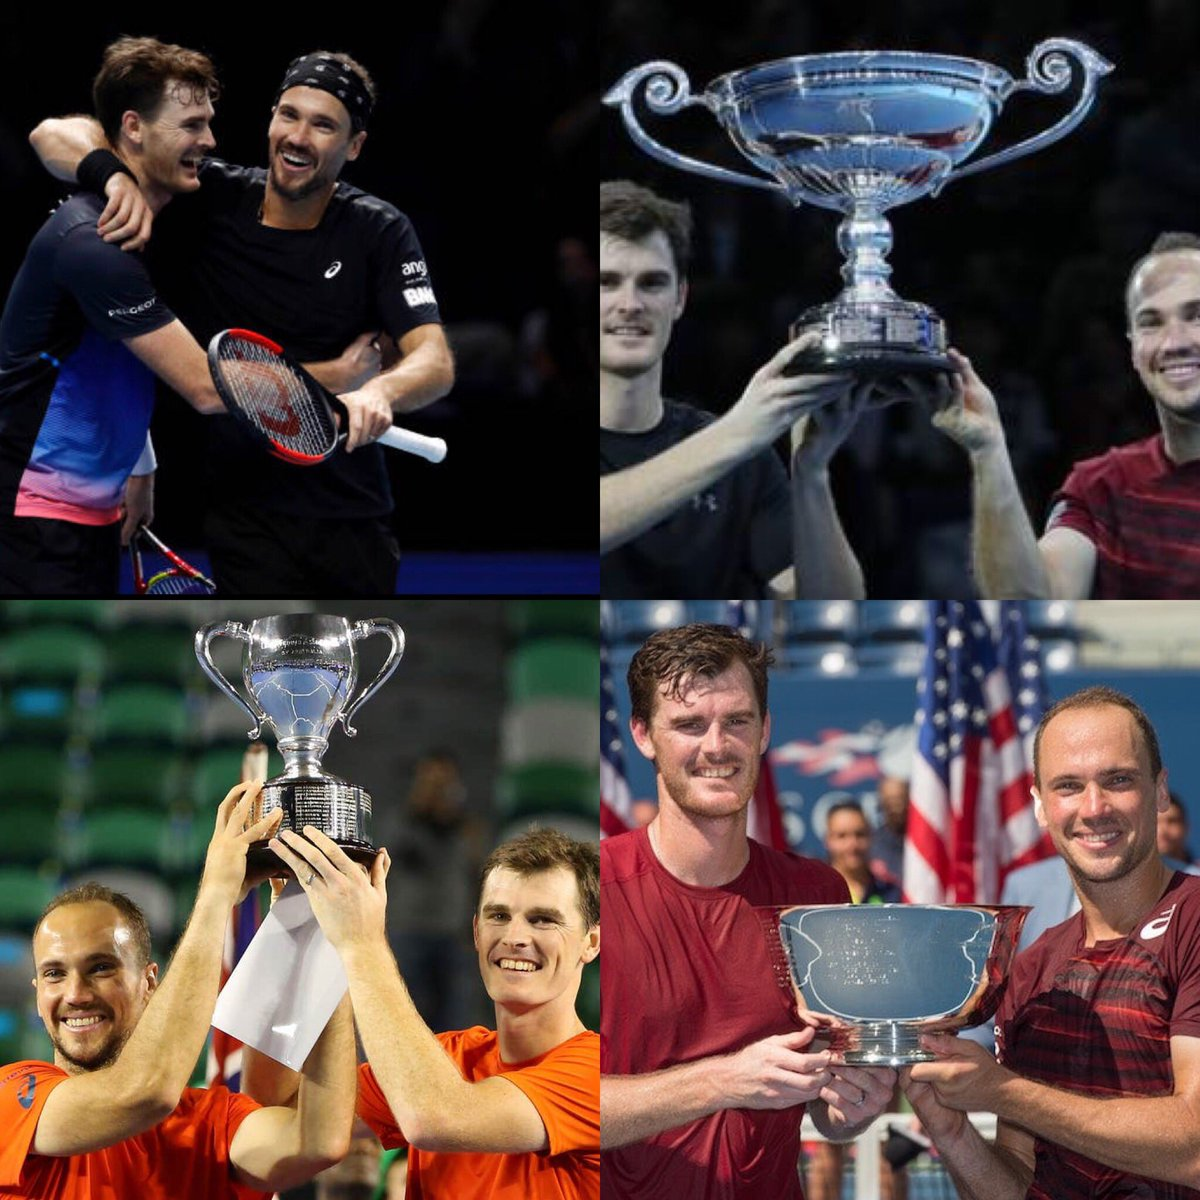 So many fun and memorable moments on and off the court with @BrunoSoares82 over the last few years. 🤗